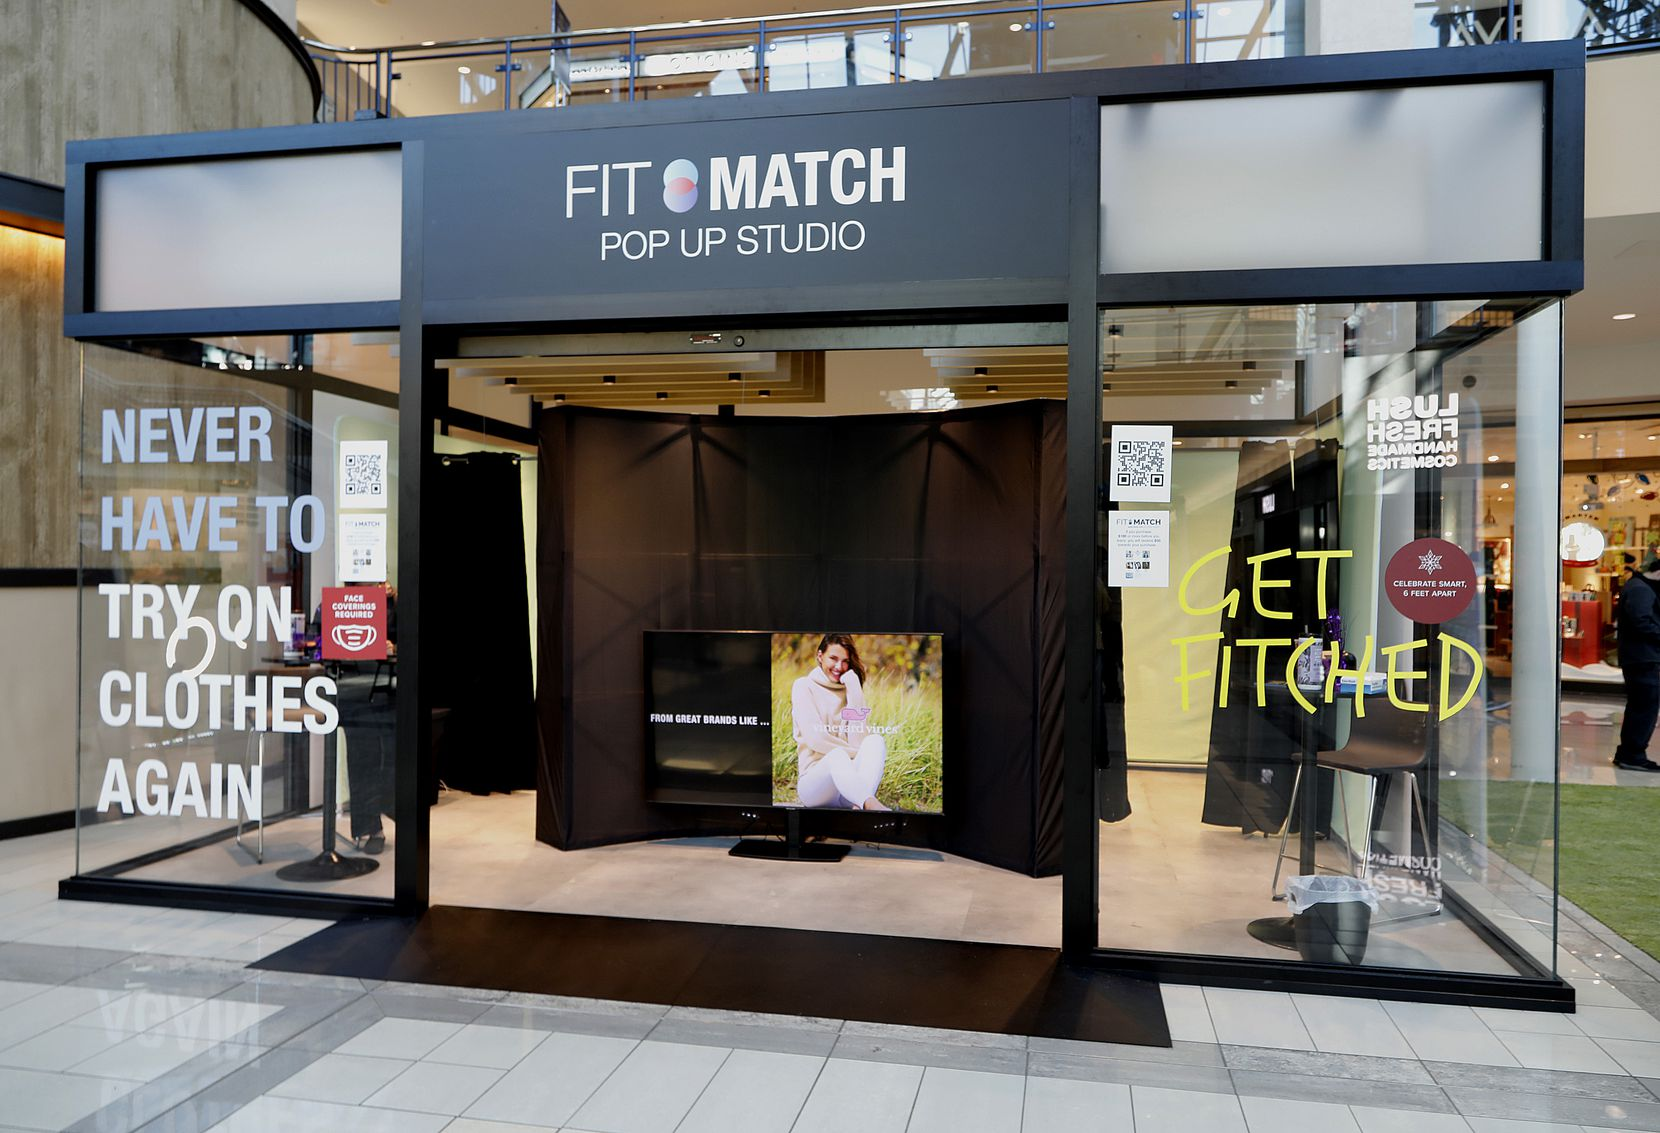 The FIT:MATCH popup studio at Stonebriar Centre in Frisco.